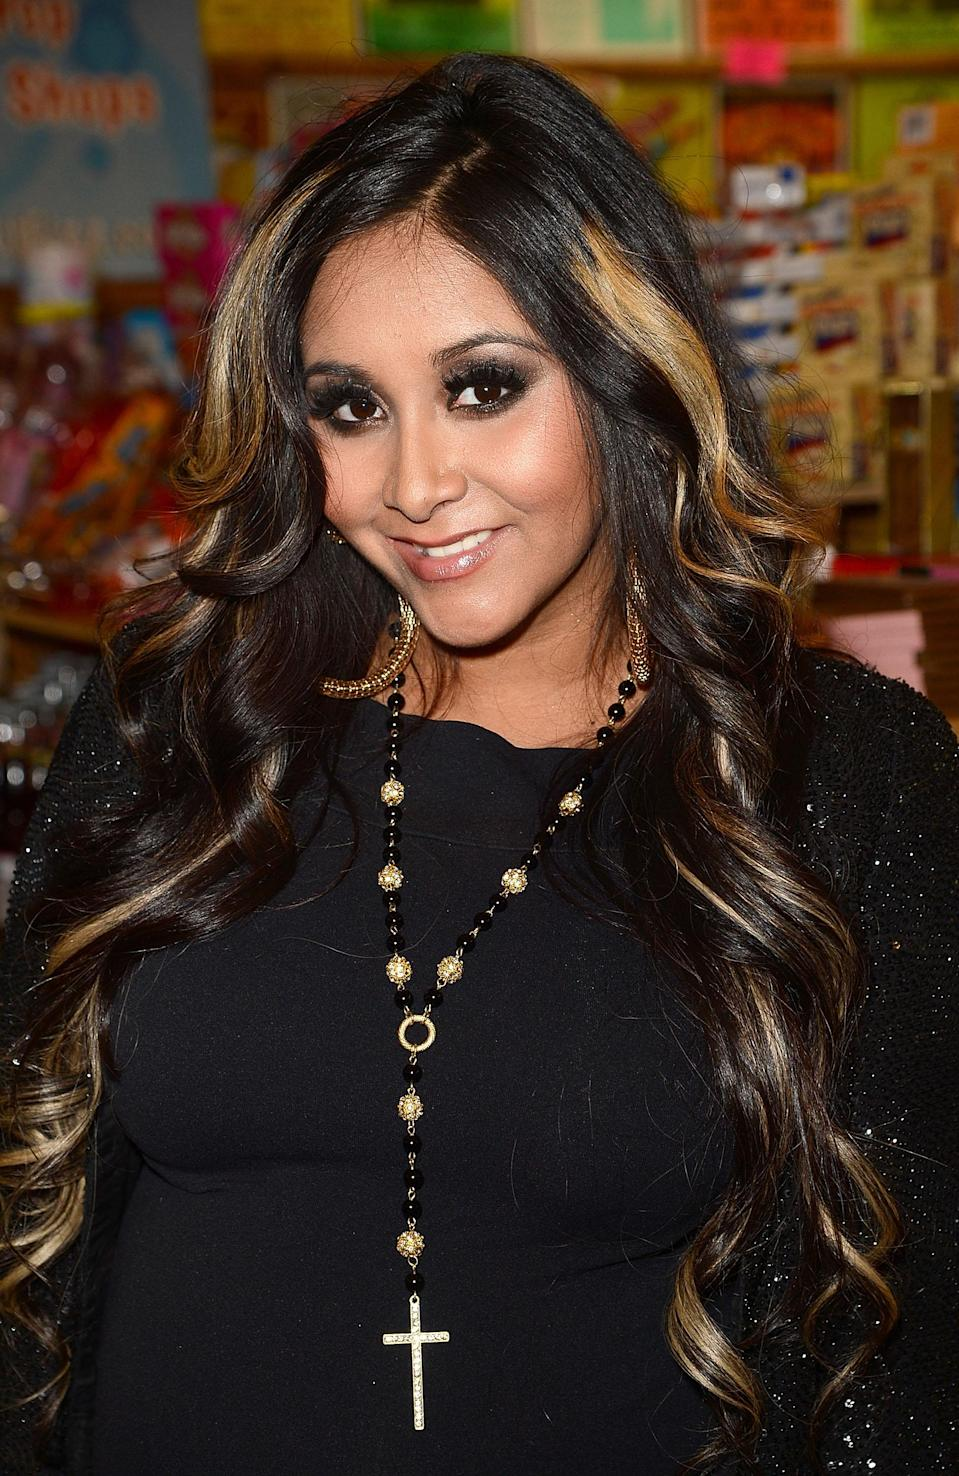 "<b>Nicole ""Snooki"" Polizzi:</b> ""My prayers go out to the victims and families of the Colorado theater shooting. #justicewillbeserved"" (Photo by Jason Merritt/Getty Images)"